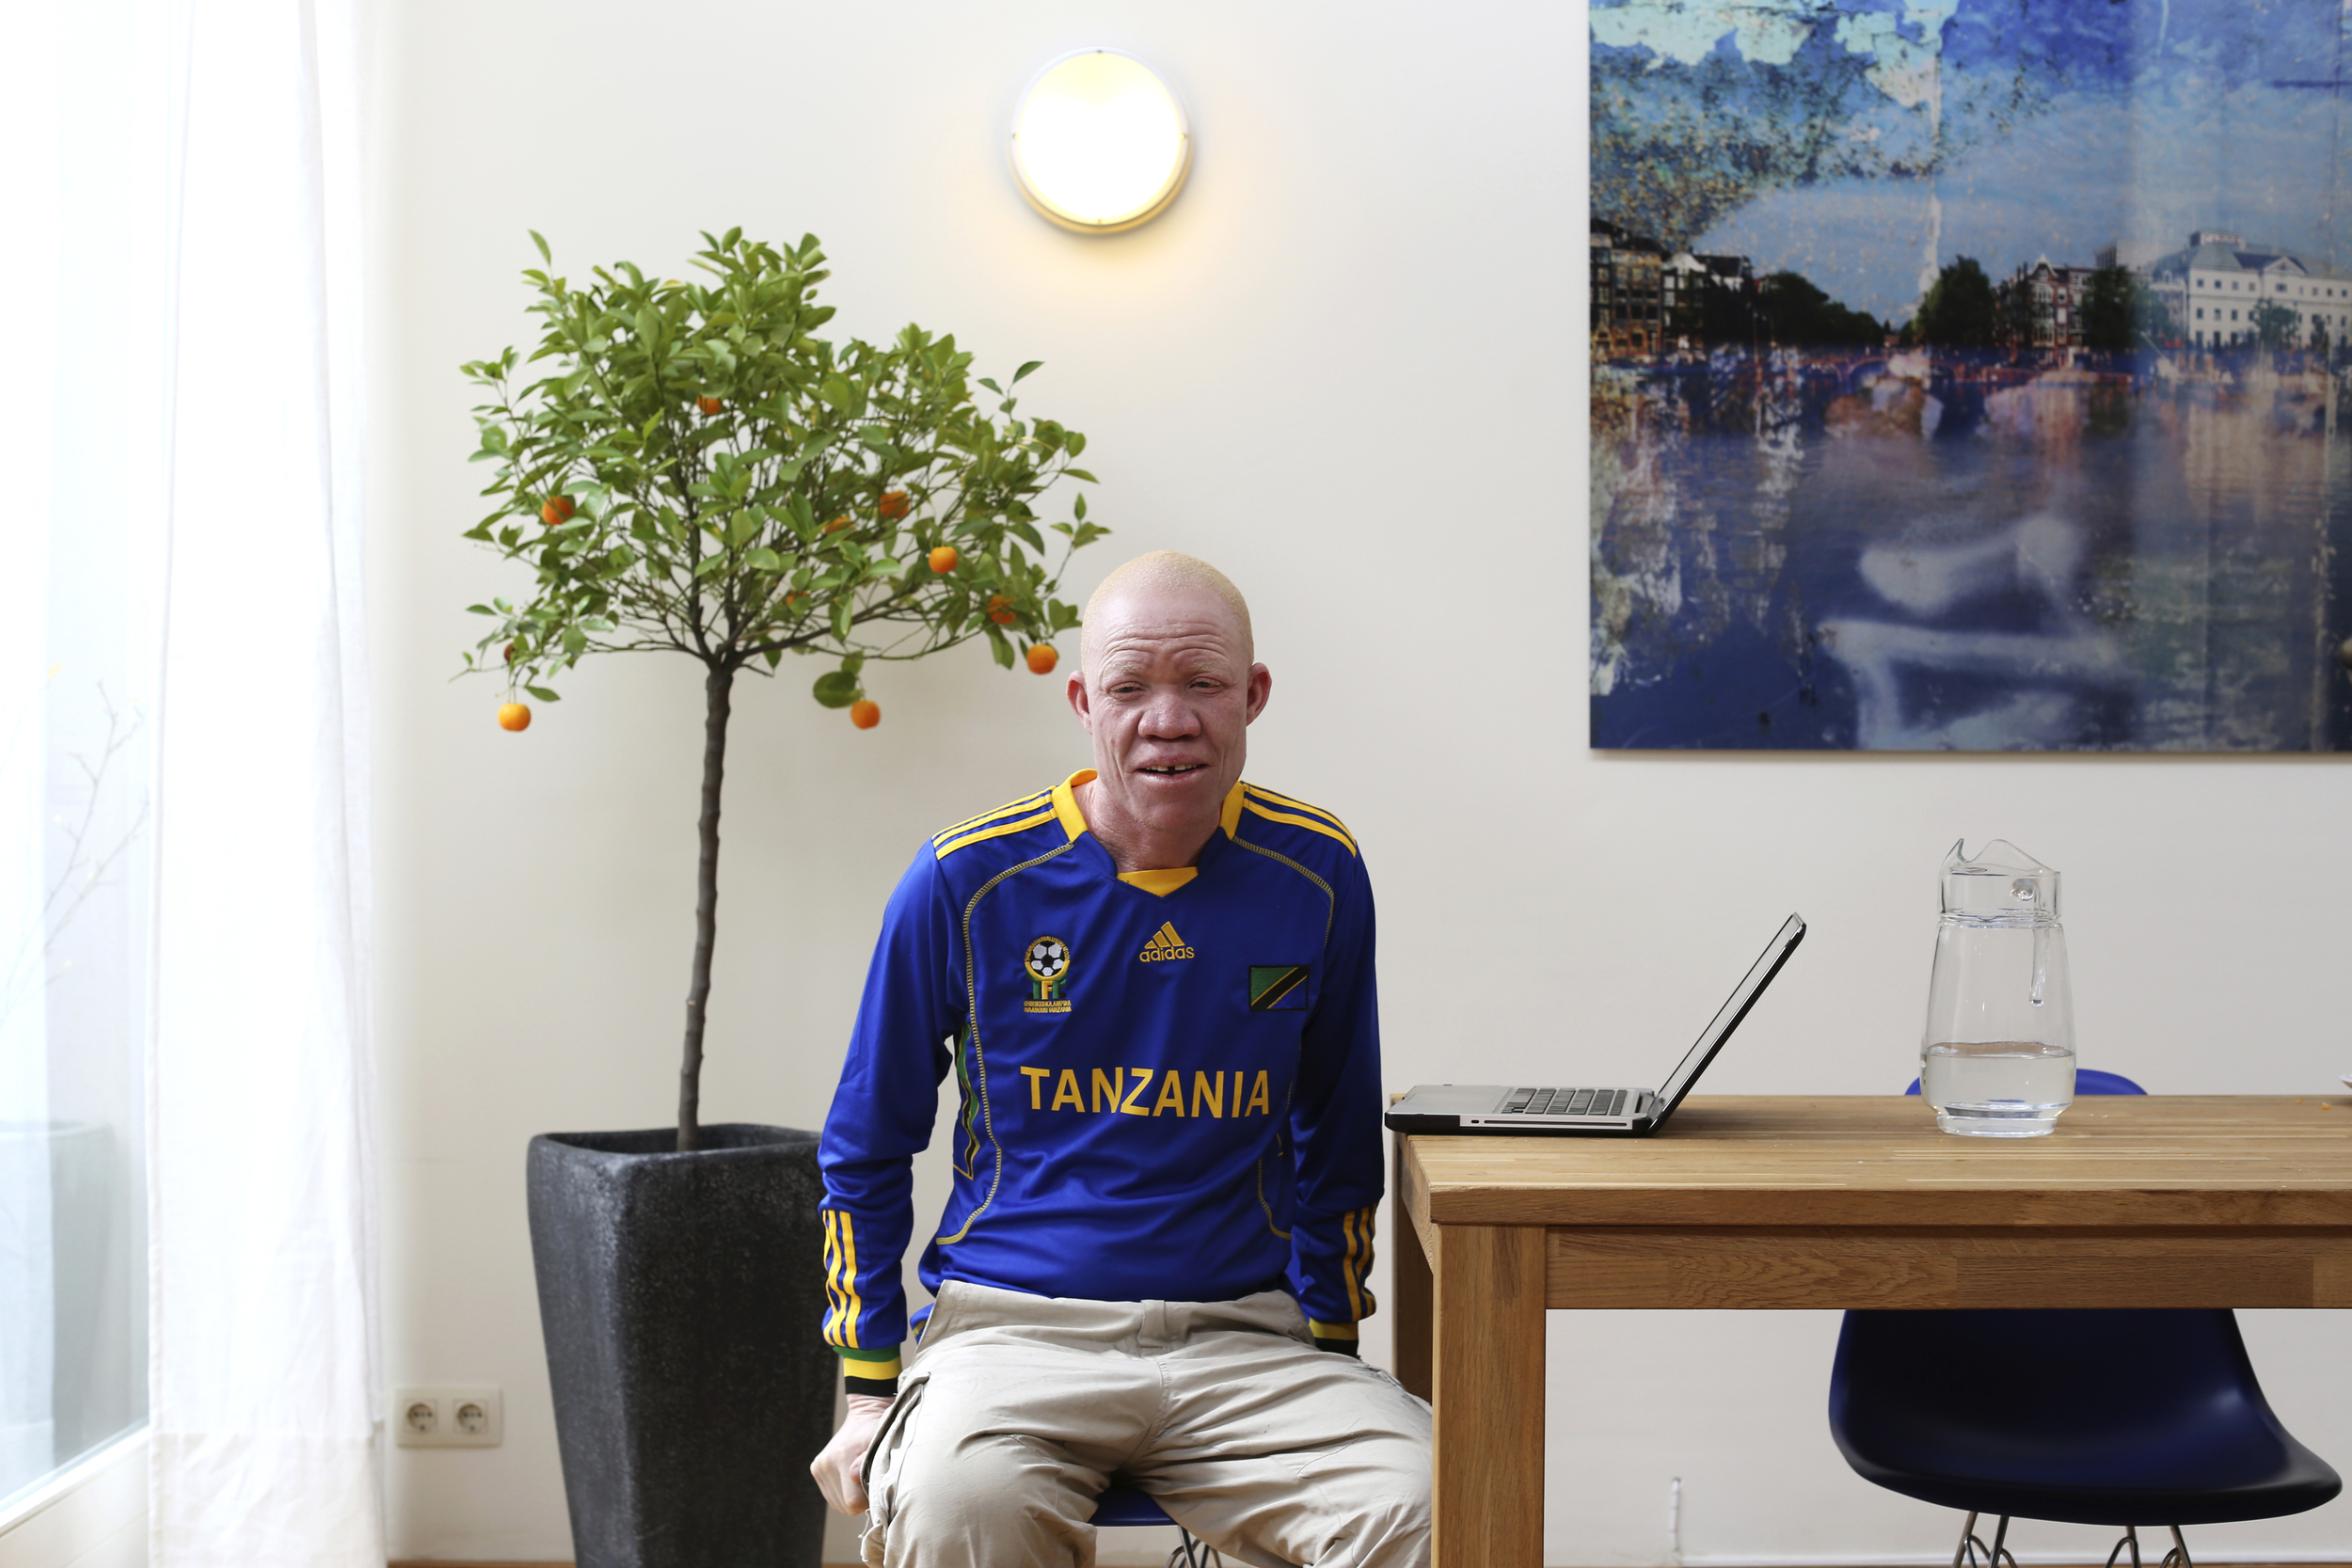 Before we met in person, he called me 'sister'. We do have a connection: he is an activist and the main subject of a documentary my brother made about the killings of people with albinism in Tanzania.  When I meet him for the first time in Amsterdam, I am already overwhelmed. Josephat is used to having his picture taken by now, although he doesn't seem to understand why I want to take it. He's partially blind, and I don't know if he can see me when I ask him to look at me. I only take a few shots.  He tells me I must use my photography to make great change in the world. I think about it.  I can't stop thinking about it.